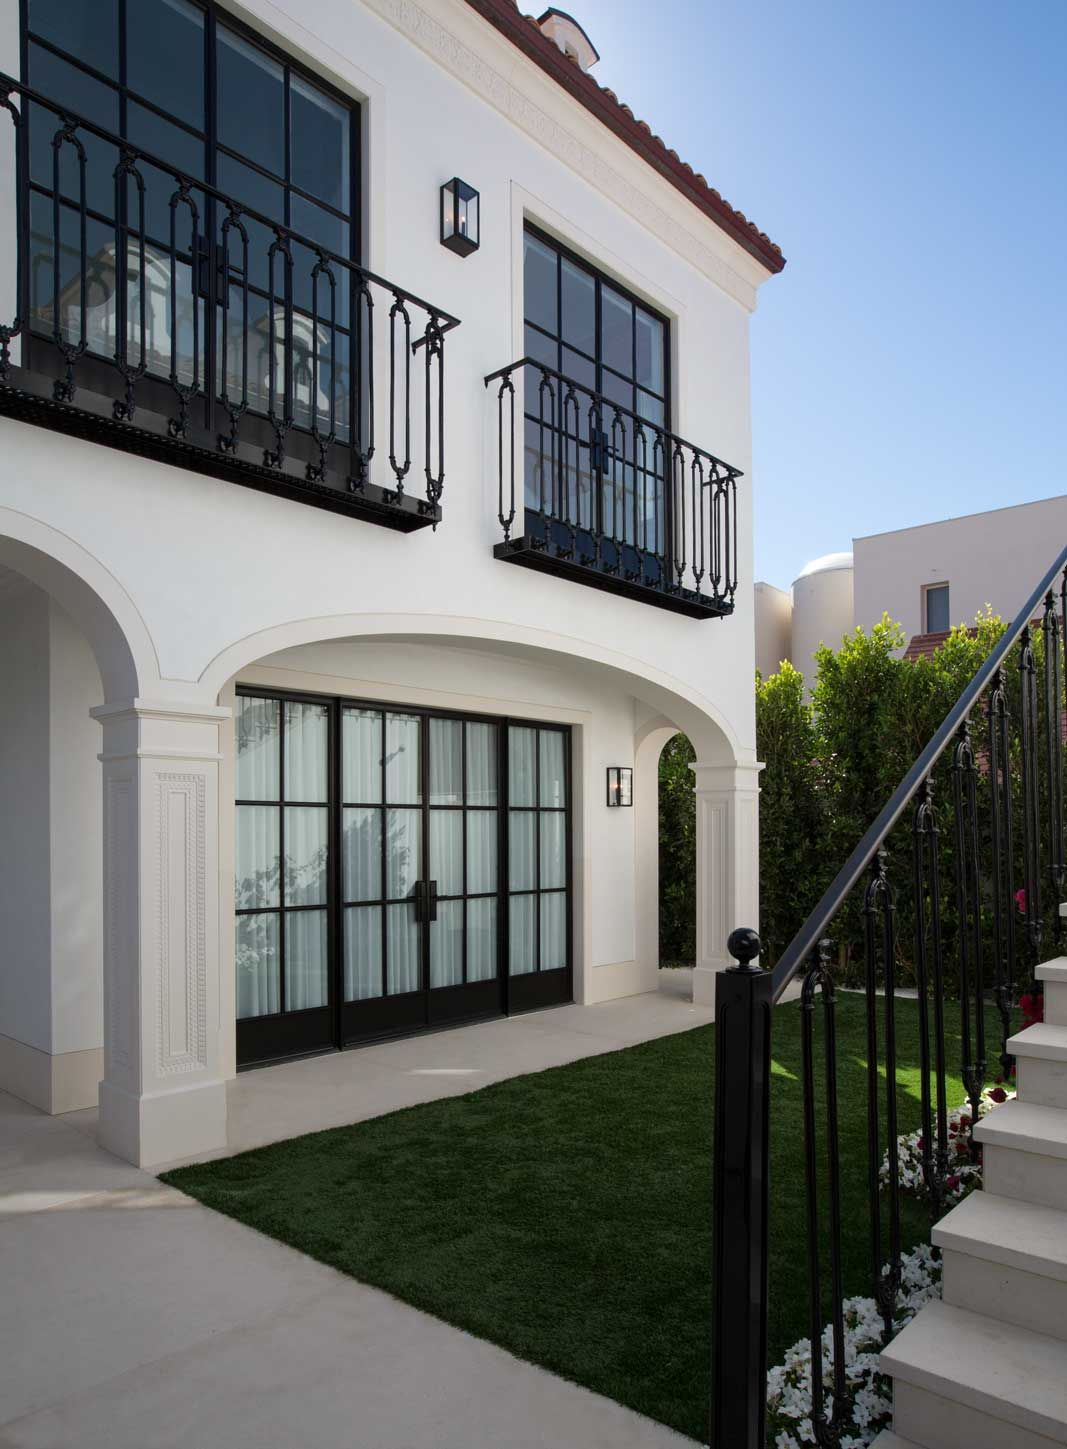 Home Exterior Design 5 Ideas 31 Pictures: House Designs Exterior, House Exterior, Exterior Design